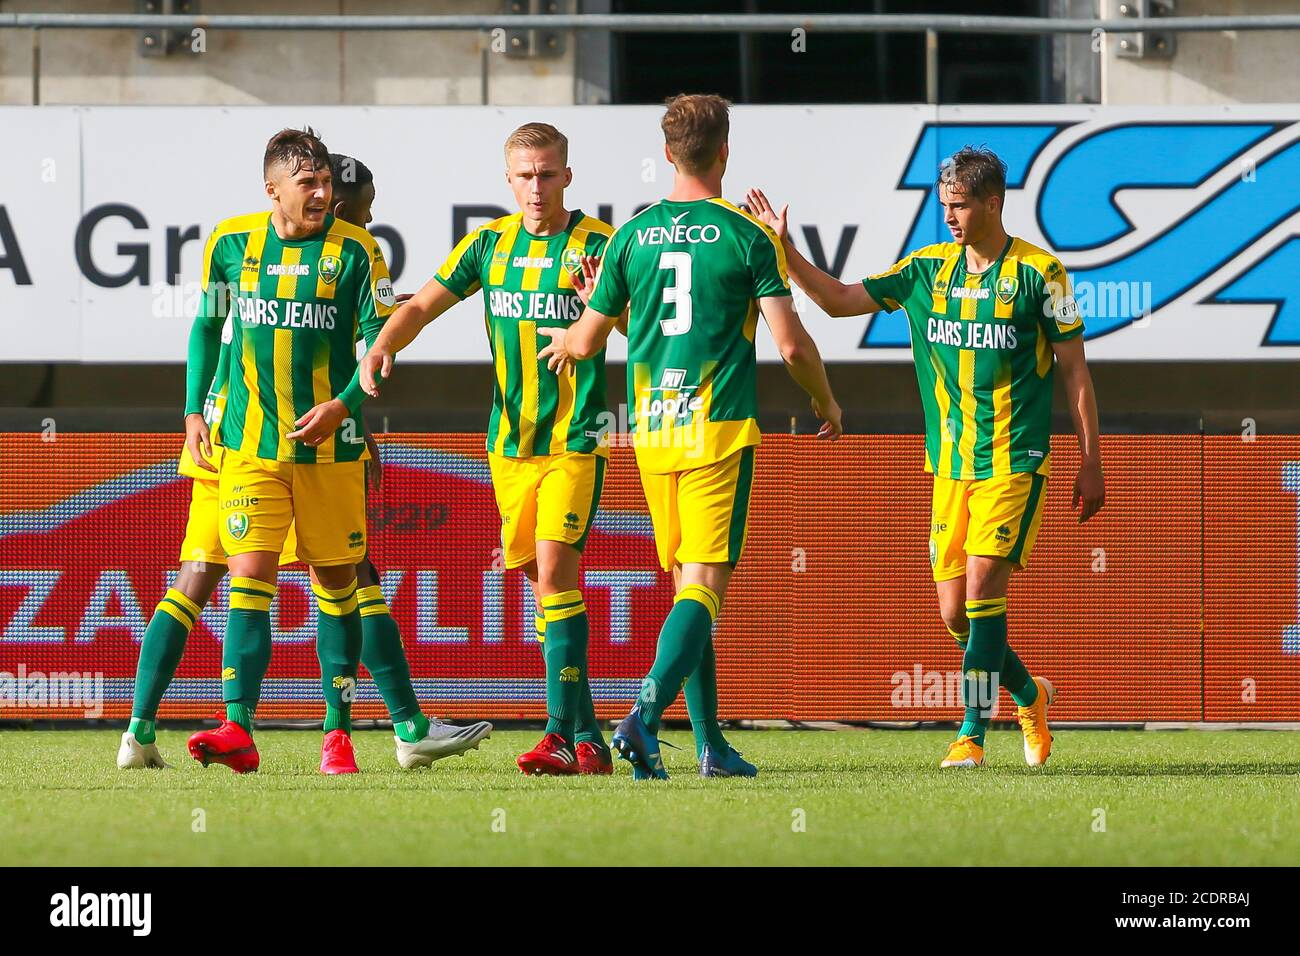 Rotterdam 29 8 20 Cars Jeans Stadion Pre Season 20 21 Ado Den Haag Az Ado Player Jonas Arweiler Scoort 1 0 Credit Pro Shots Alamy Live News Stock Photo Alamy